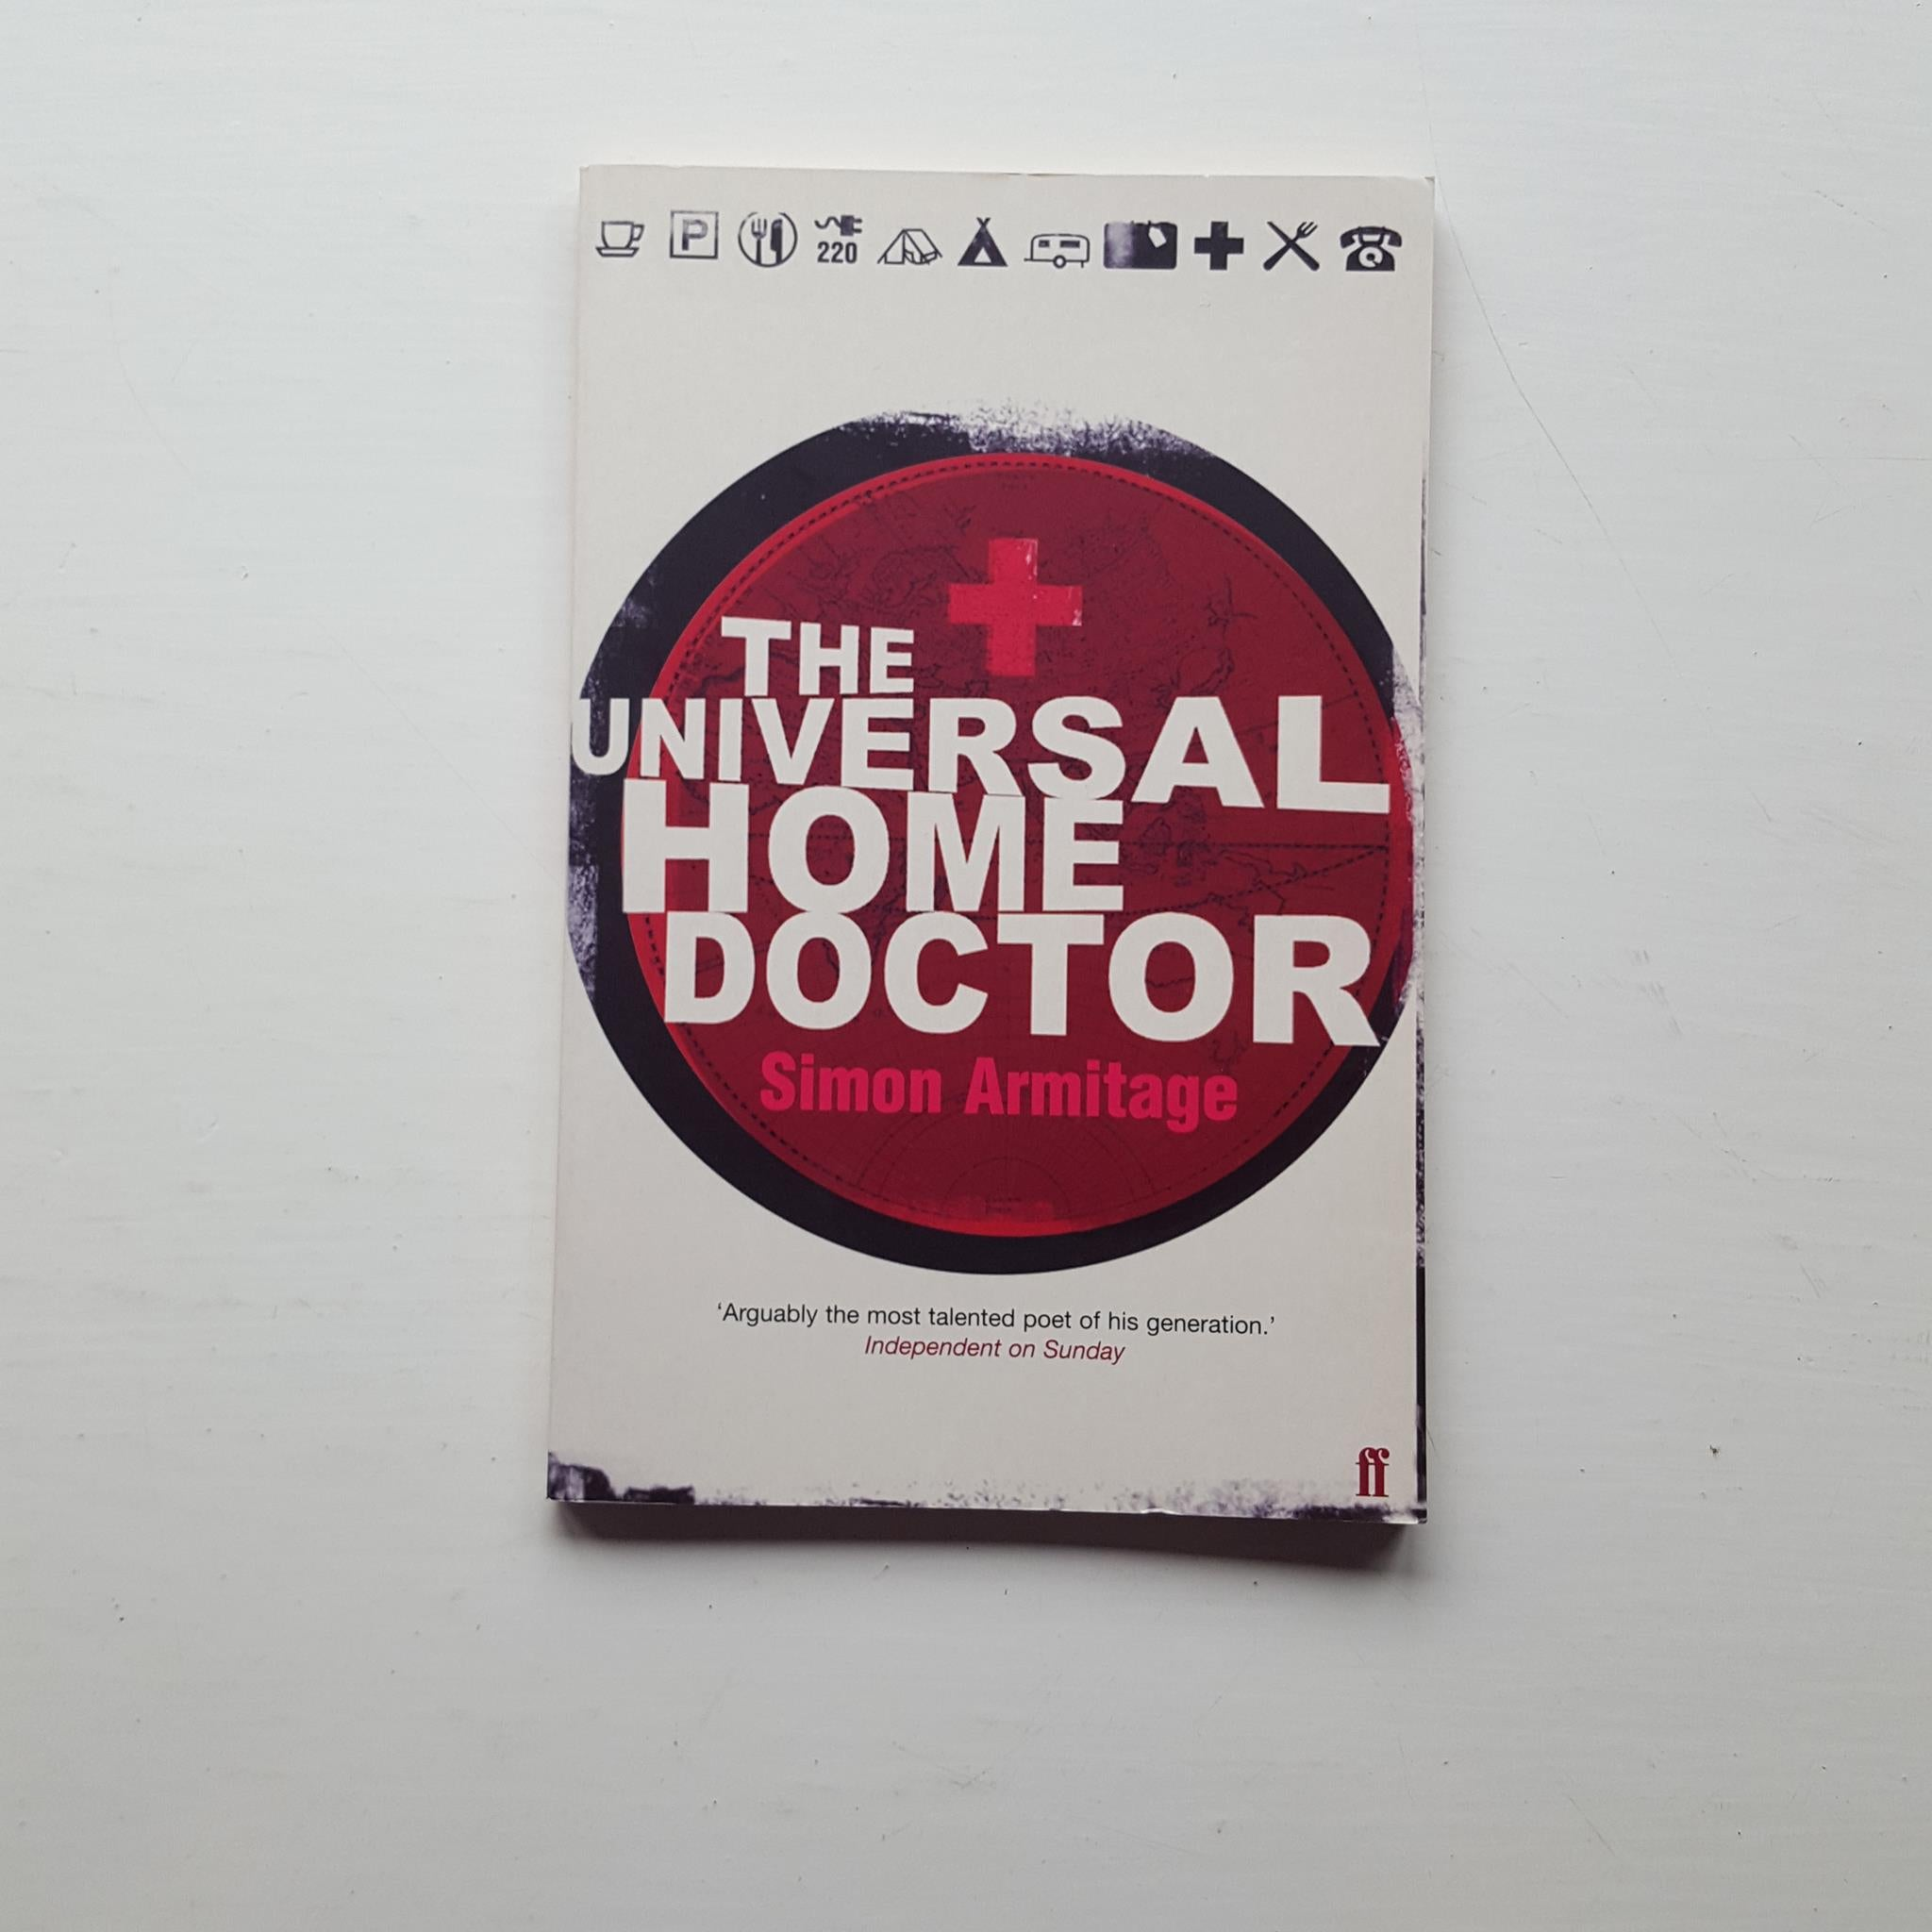 The Universal Home Doctor by Simon Armitage